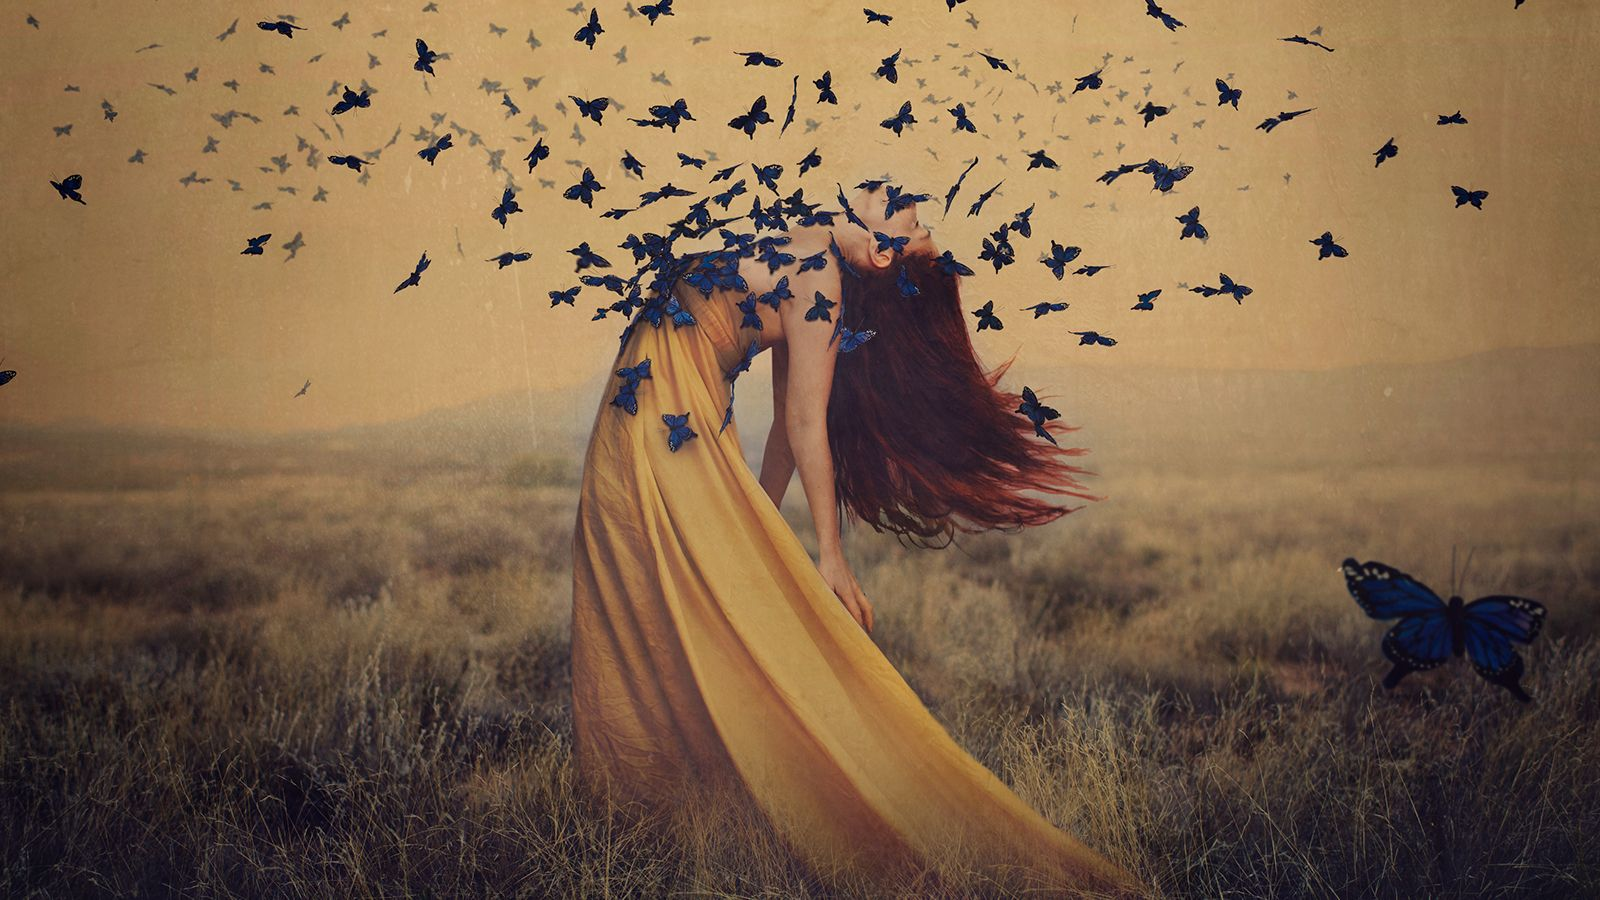 Fine Art Photography The Complete Guide With Brooke Shaden Art Photography Fine Art Fine Art Photography